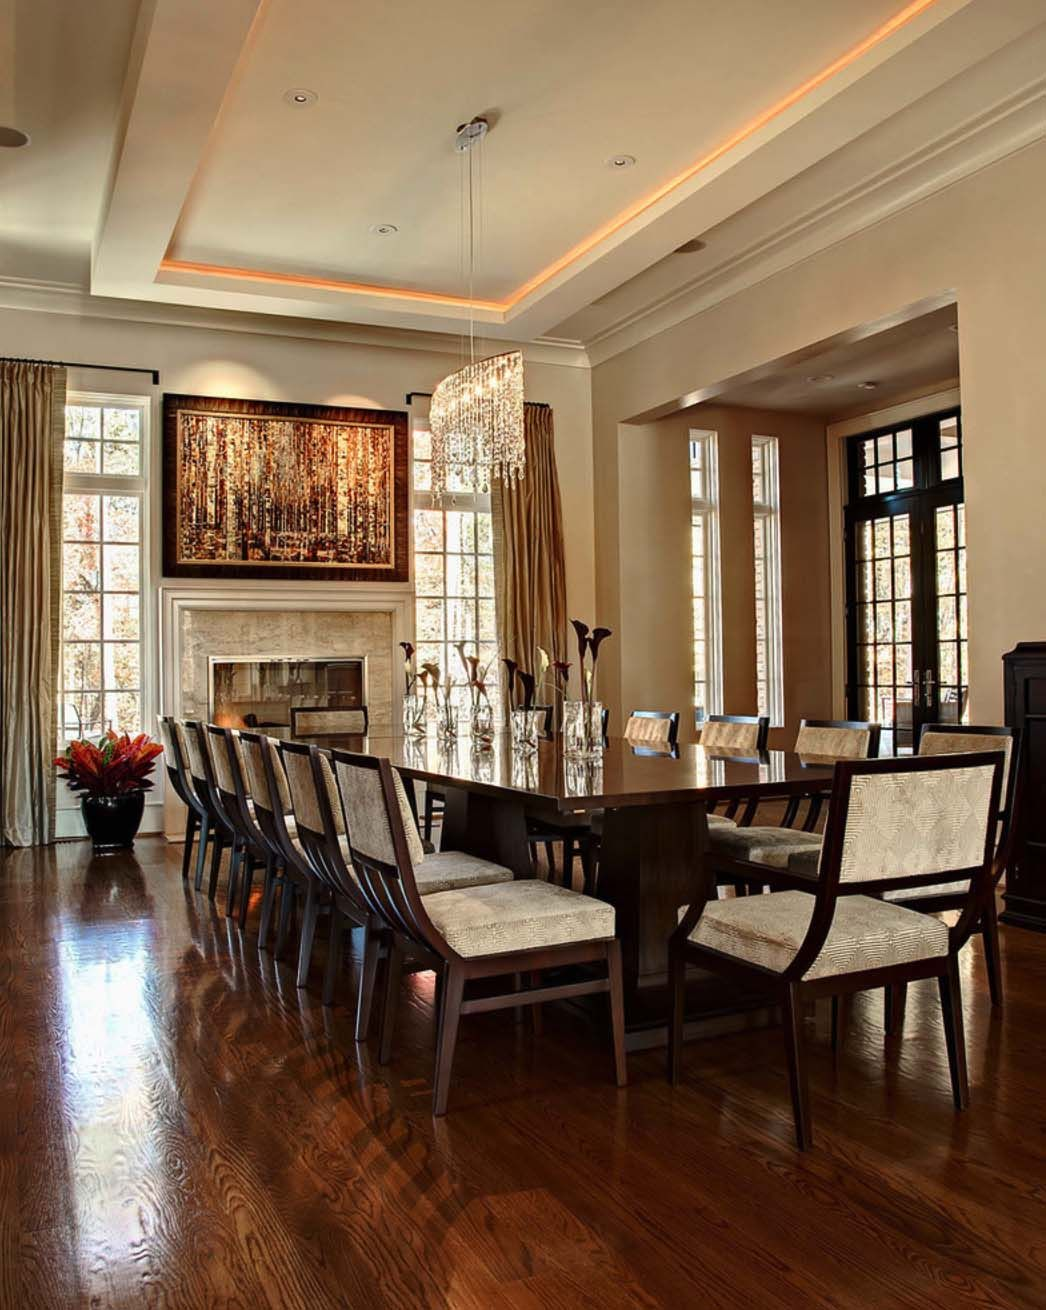 Magnificent Chancellor S Residence In North Carolina By Rufty Homes Large Dining Room Table Elegant Dining Room Large Dining Table